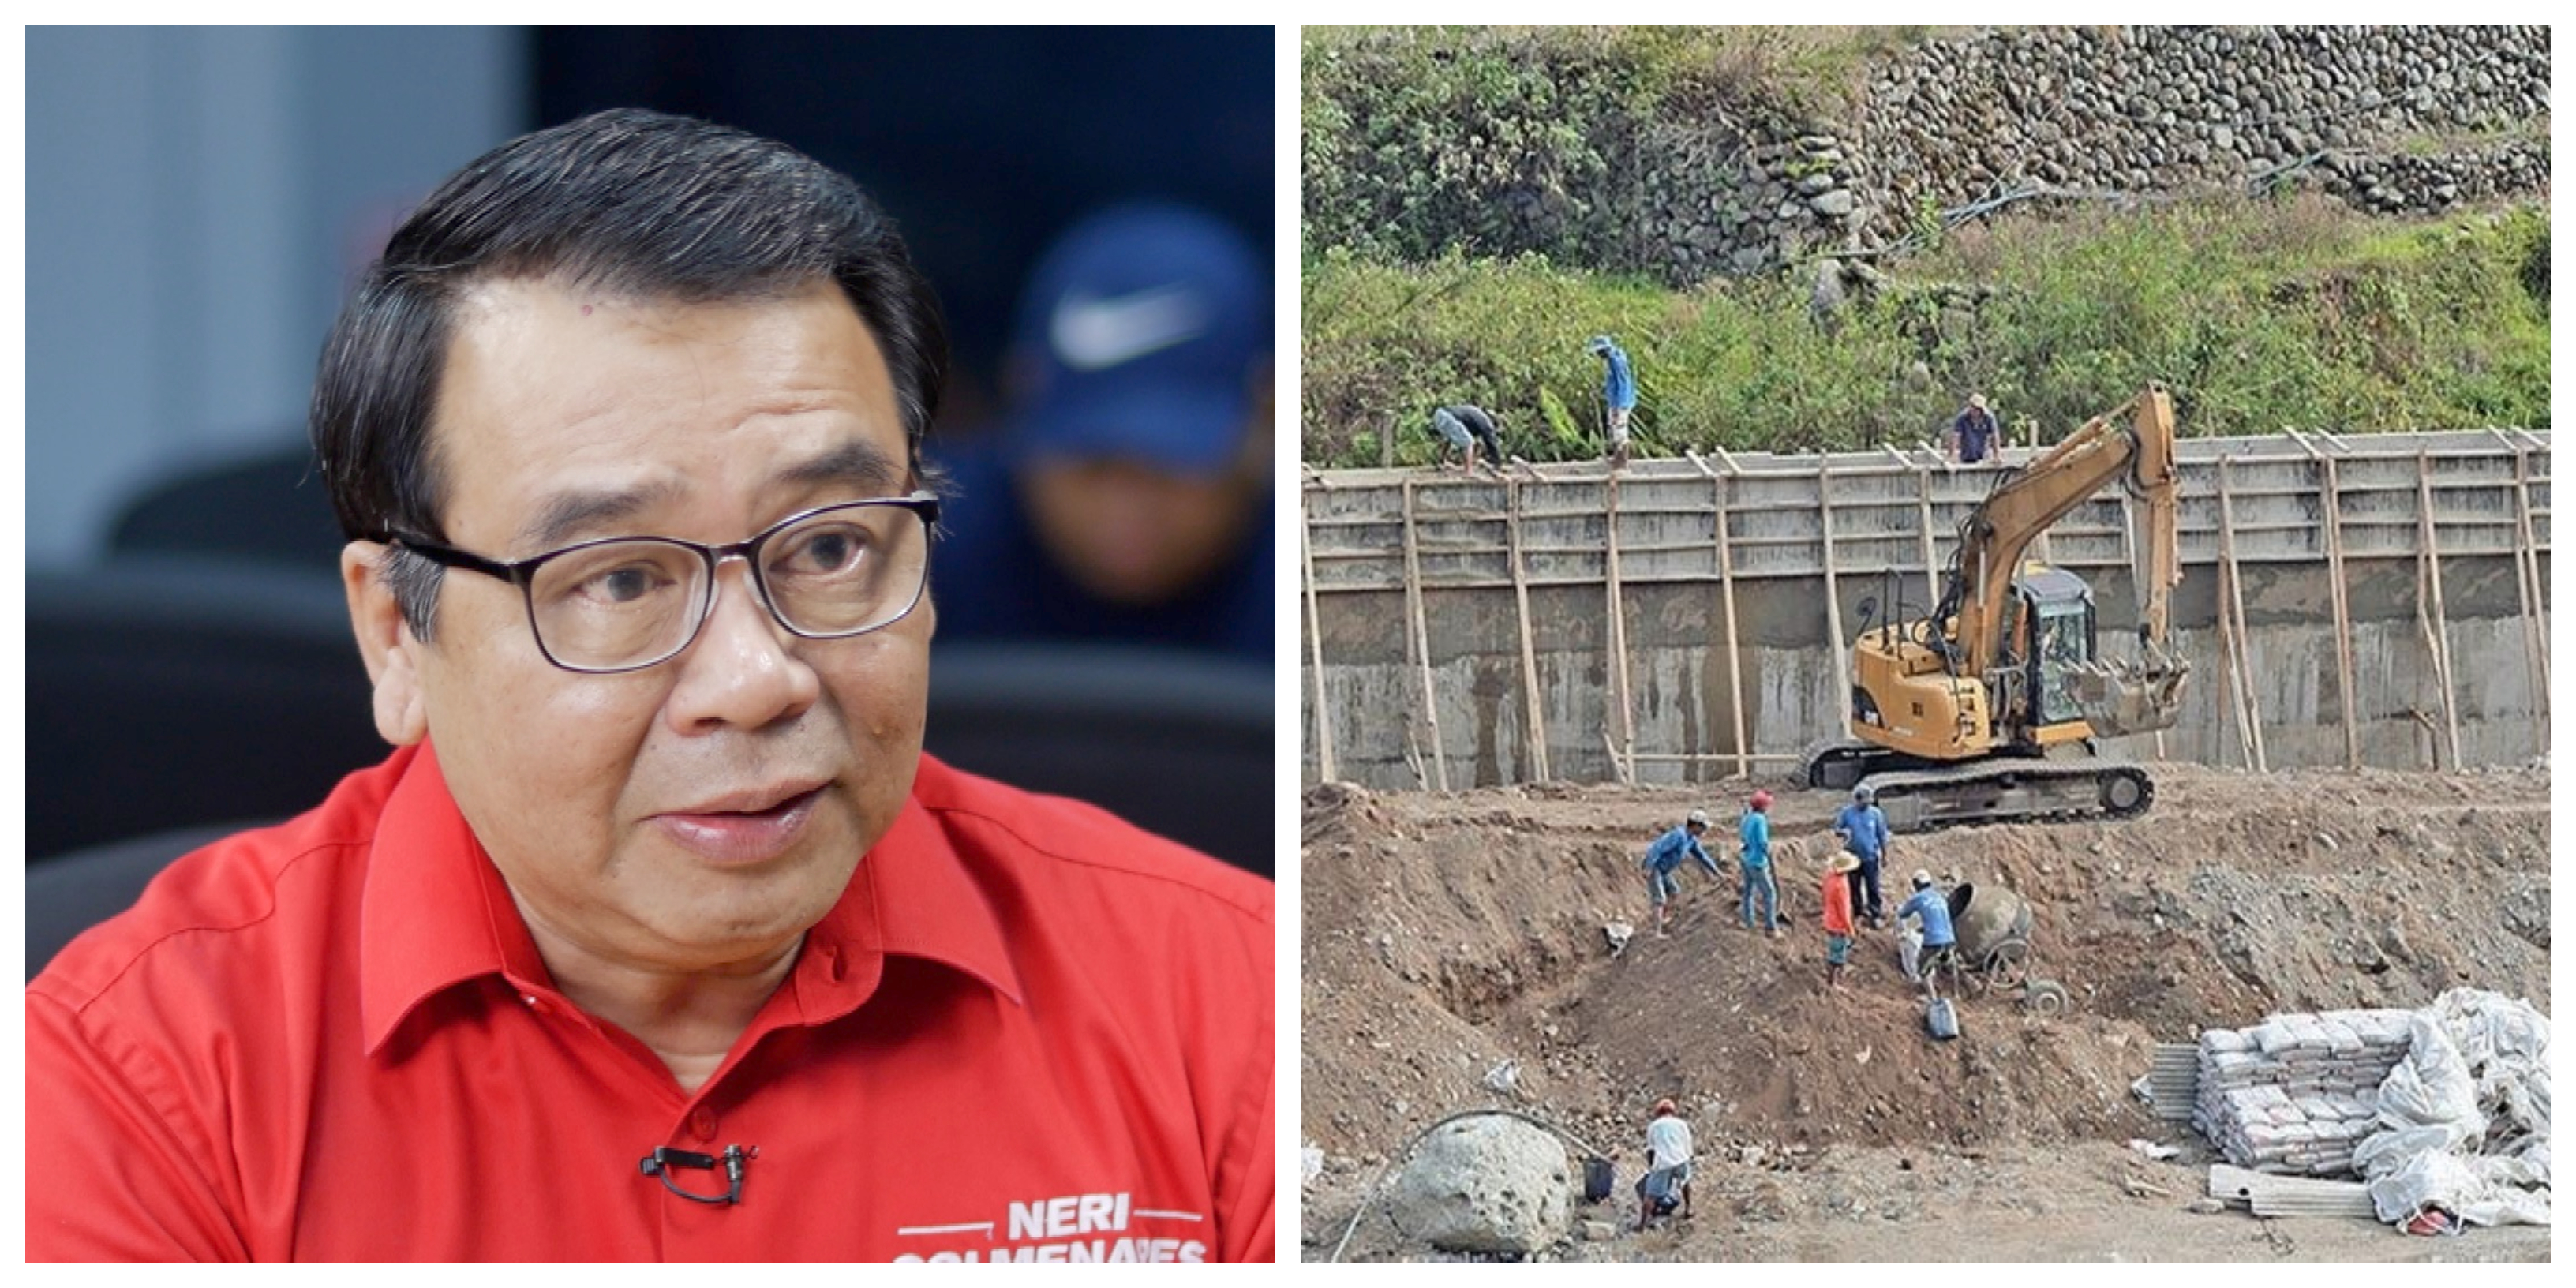 Neri Colmenares and the Chico River irrigation project